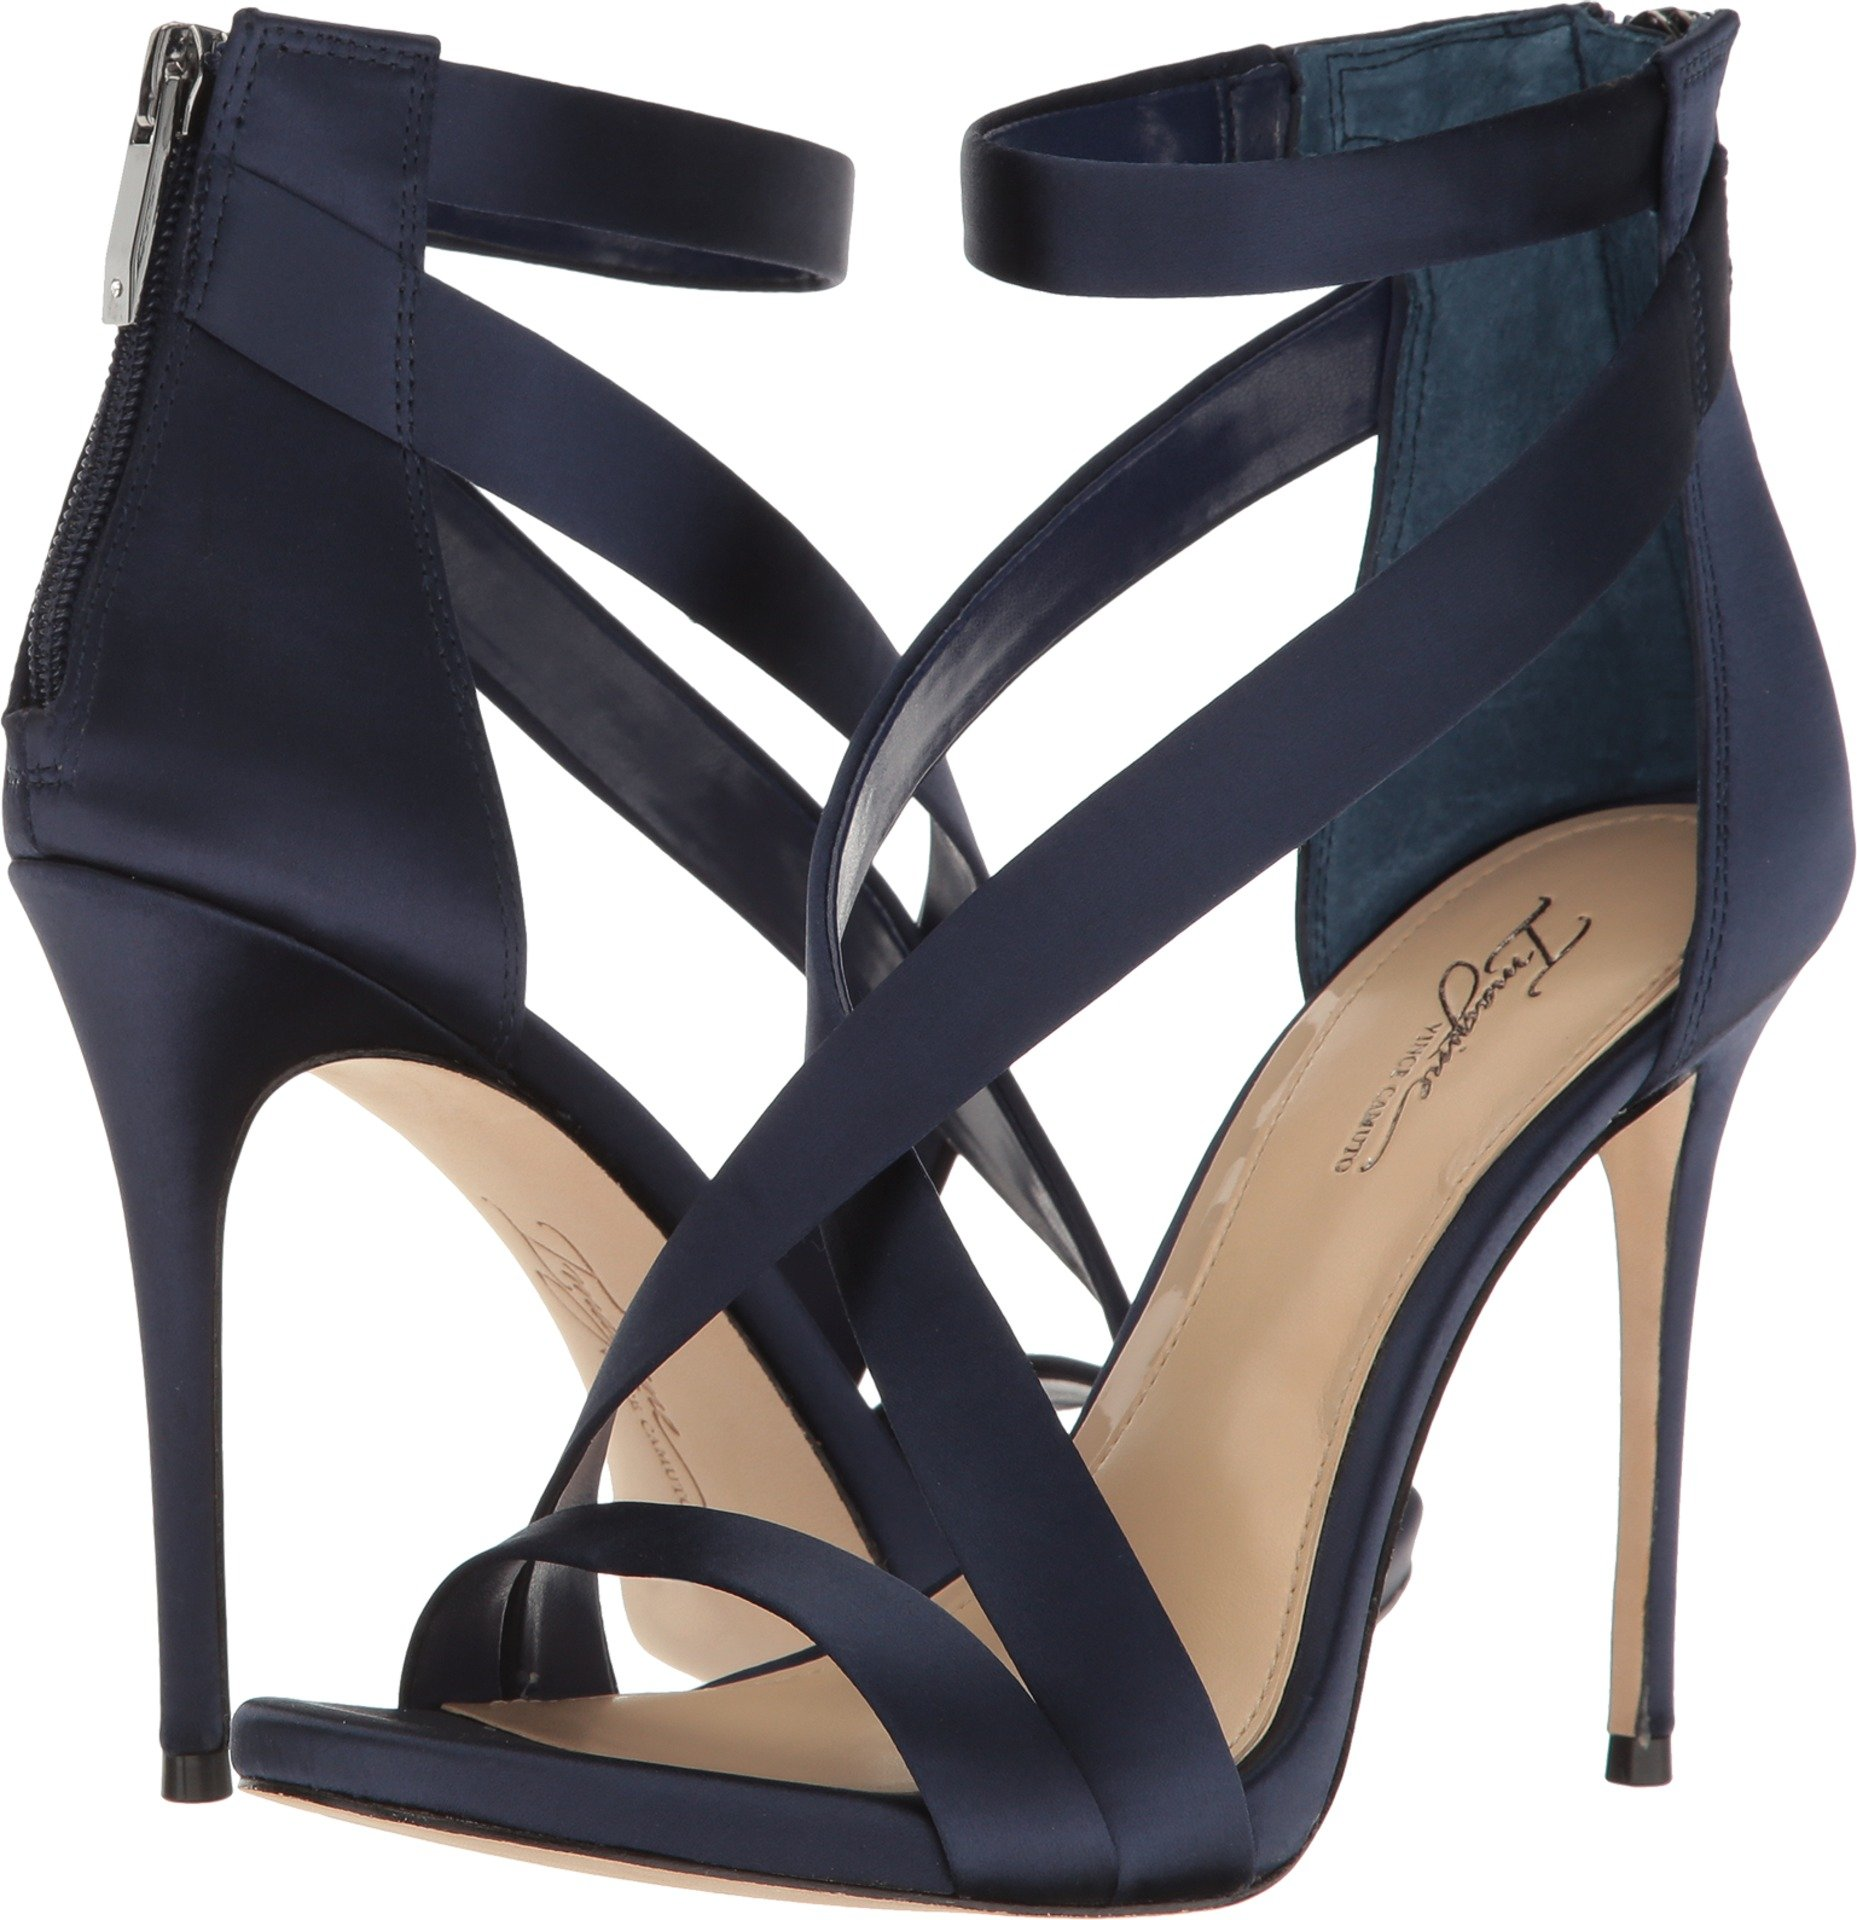 Imagine Vince Camuto Women's Devin Inkwell Blue Deluxe Satin 5.5 M US by Imagine Vince Camuto